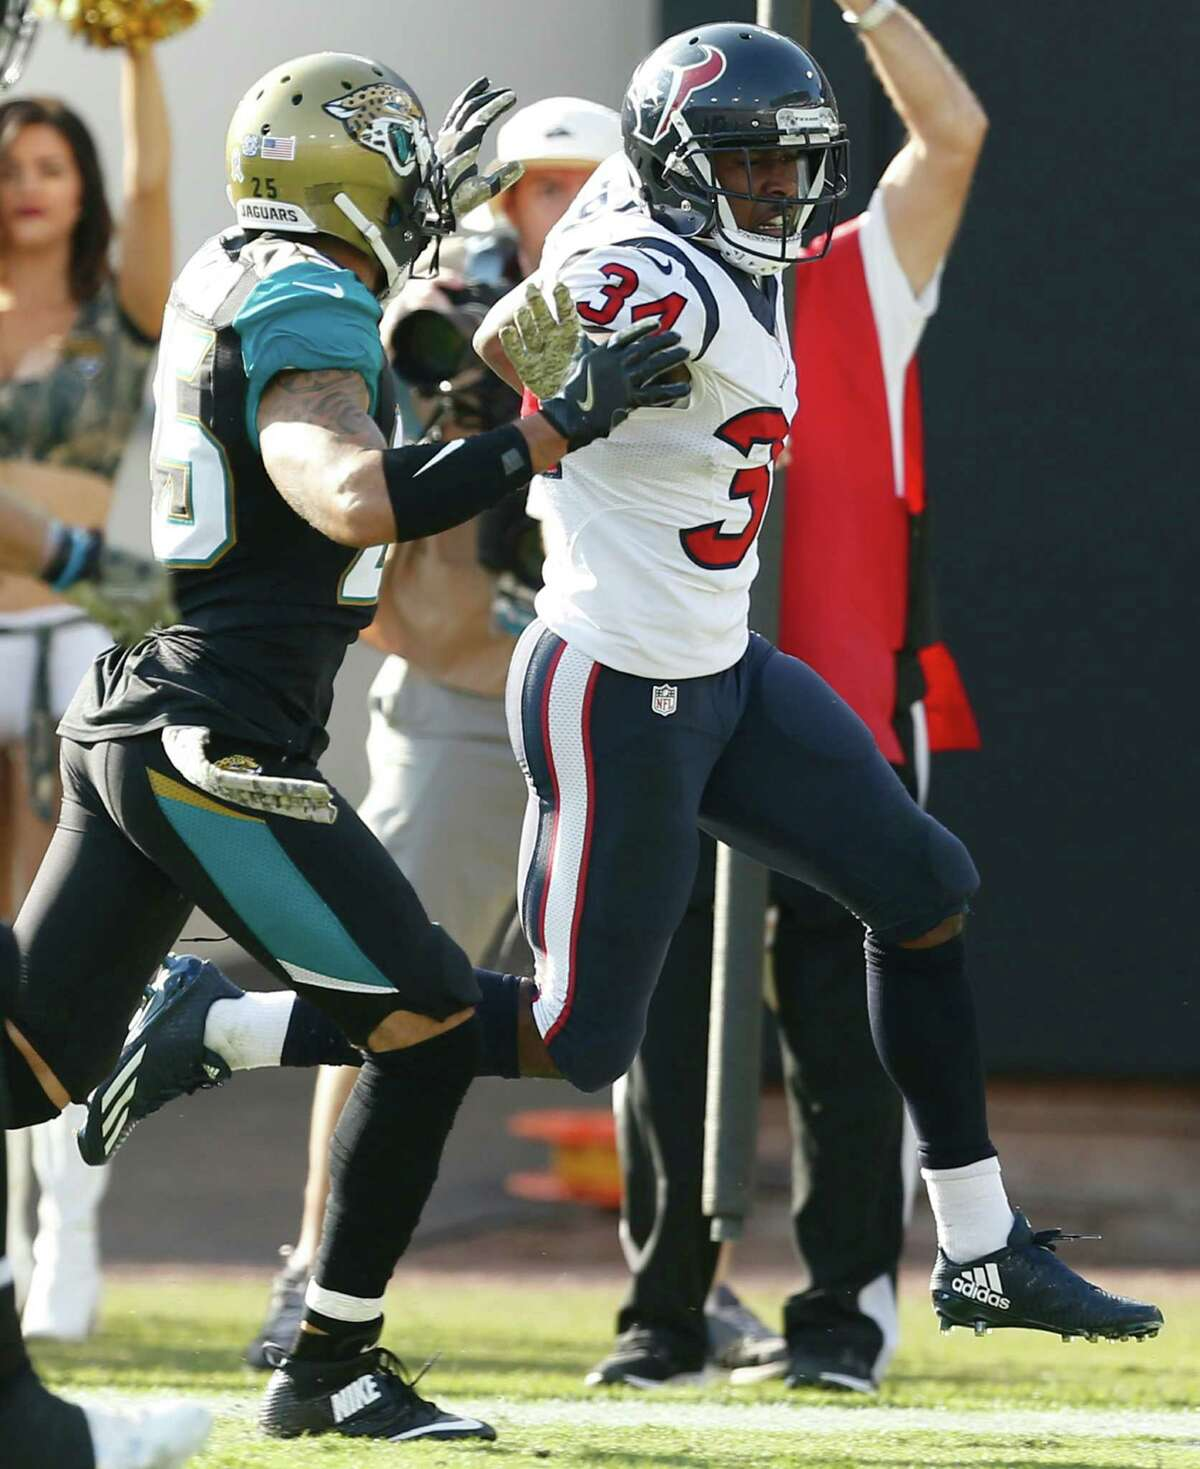 Houston Texans running back Tyler Ervin (34) runs up the sidelines past Jacksonville Jaguars defensive back Peyton Thompson (25) on a 57-yard punt return during the third quarter of an NFL football game at Everbank Field on Sunday, Nov. 13, 2016, in Jacksonville.